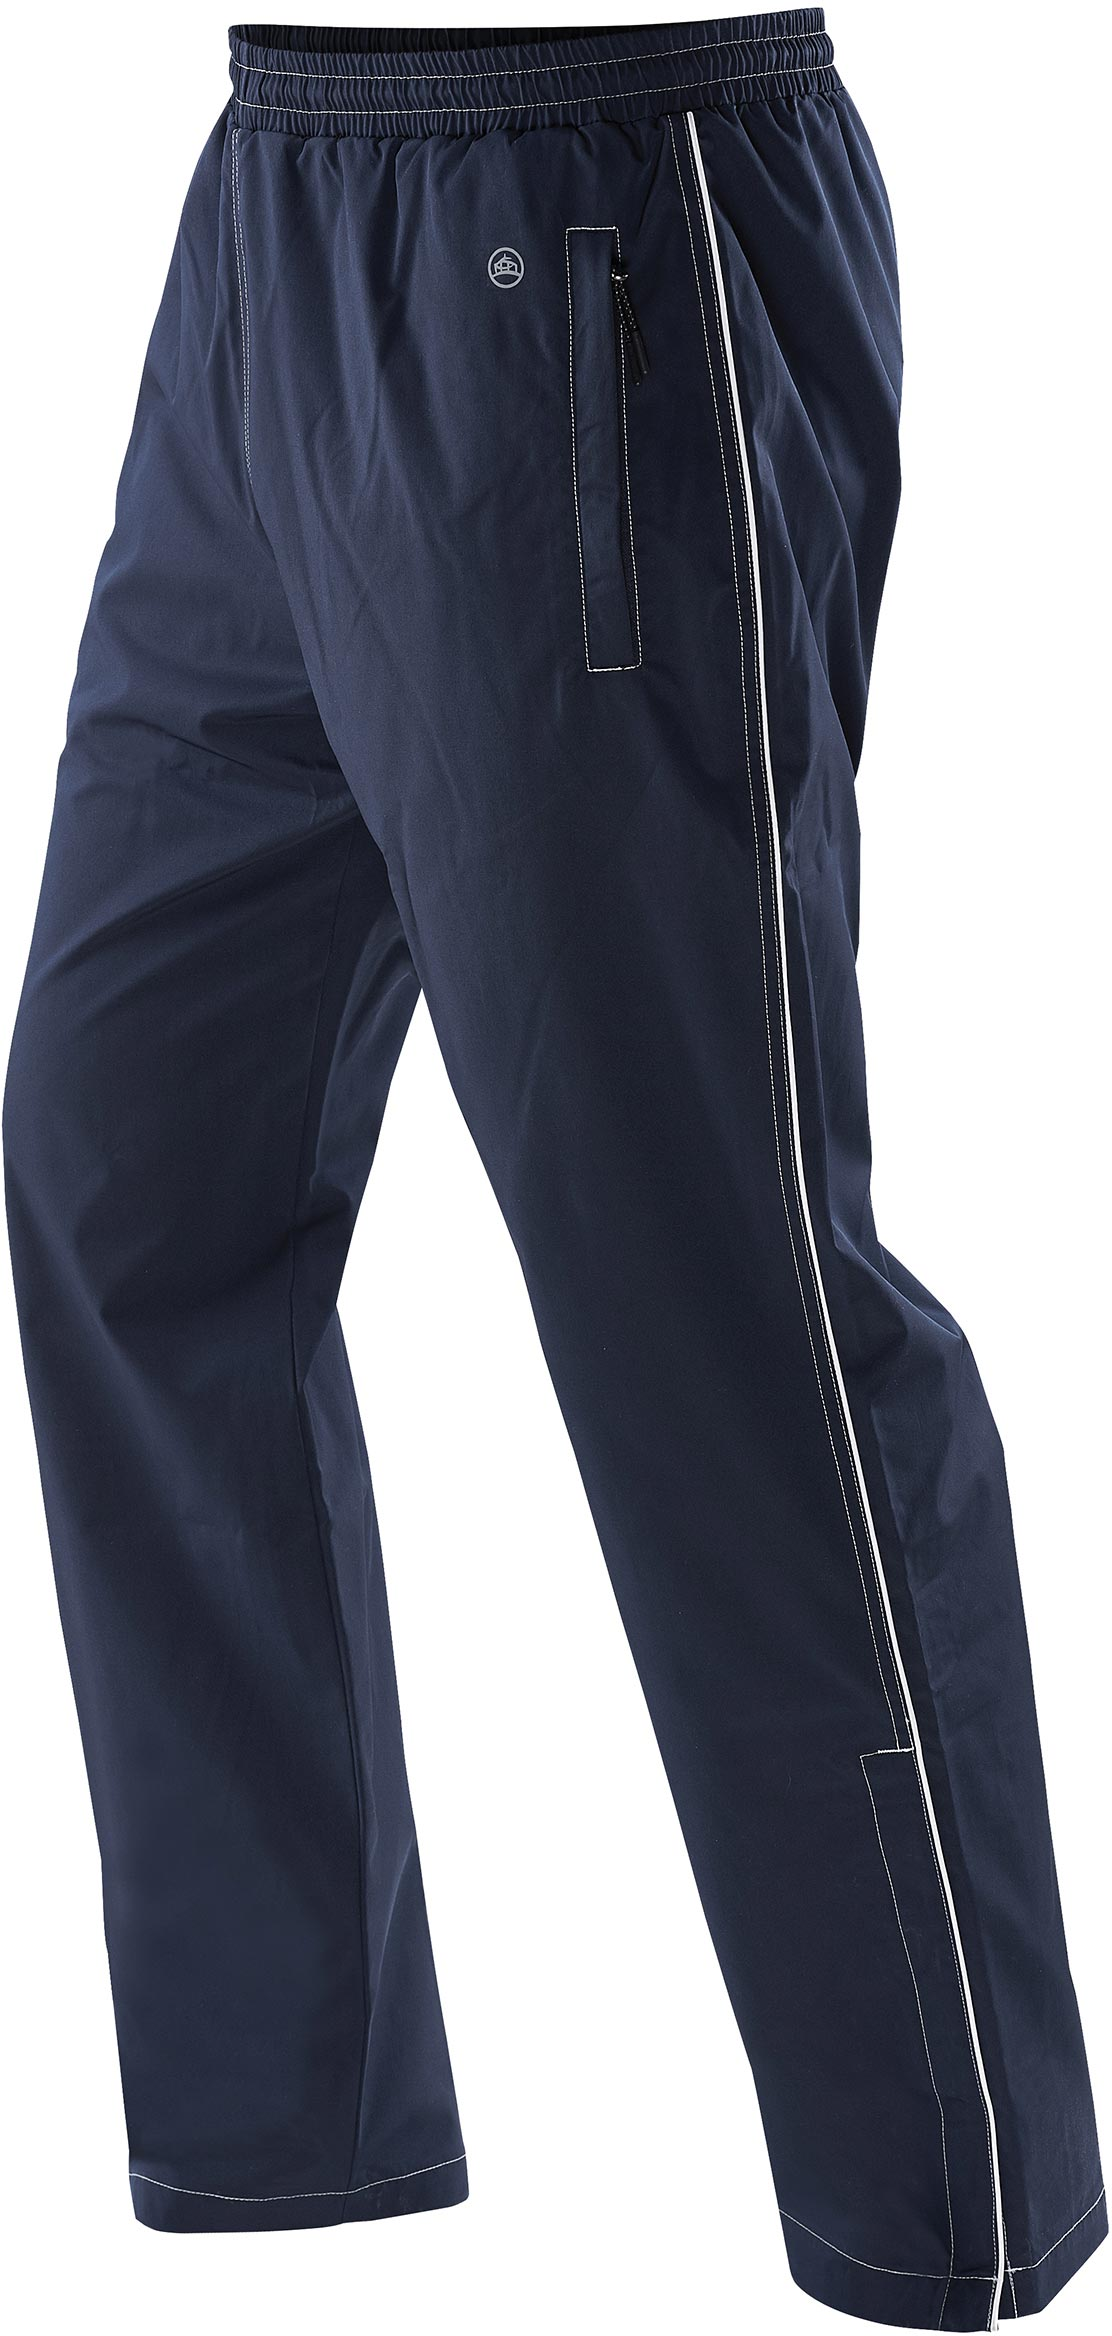 STORMTECH LADIES WARRIOR TRAINING PANT